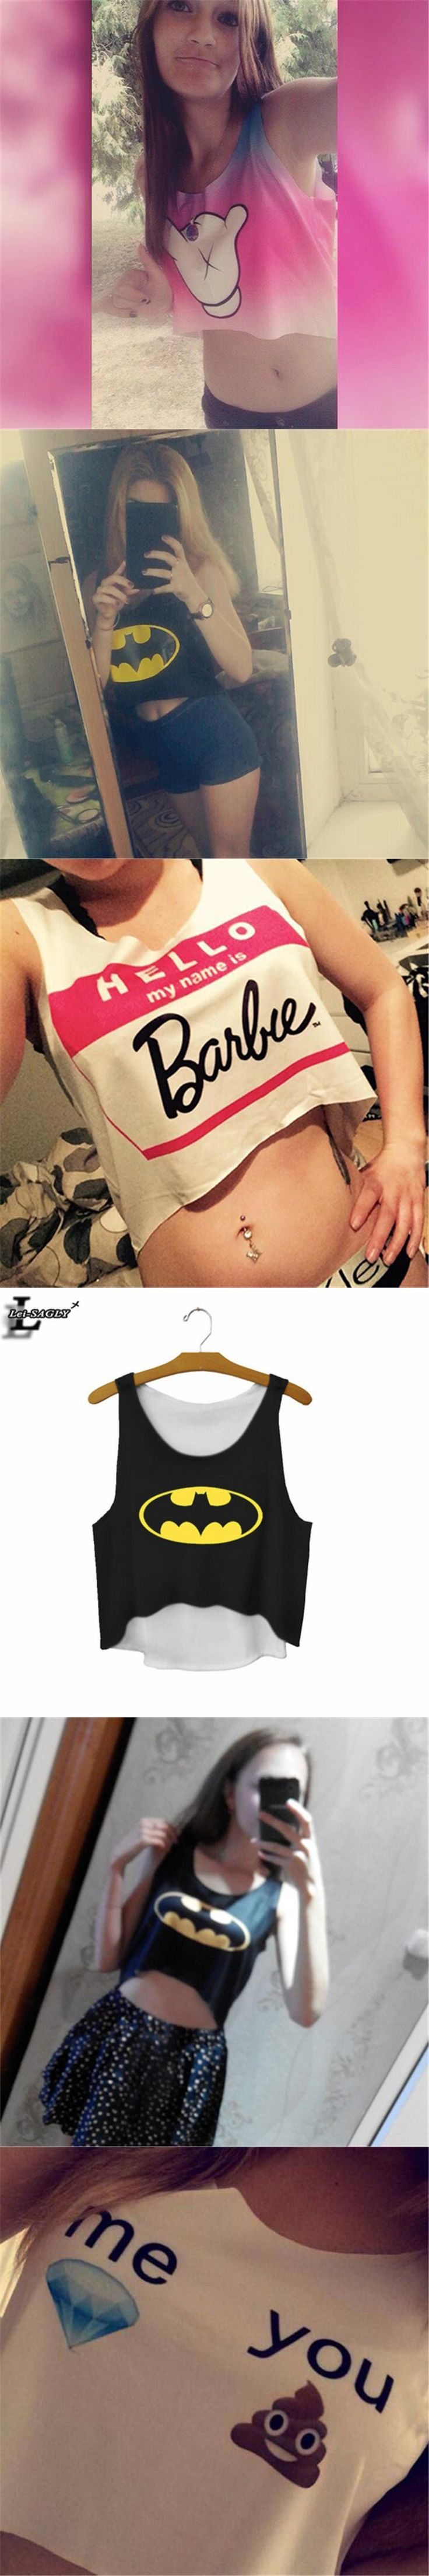 Lei-SAGLY The Batman Sign Cartoon Printed Black Crop Tops Summer Elastic Cute Sexy Tank Top Fitness Women Cropped Vest F669